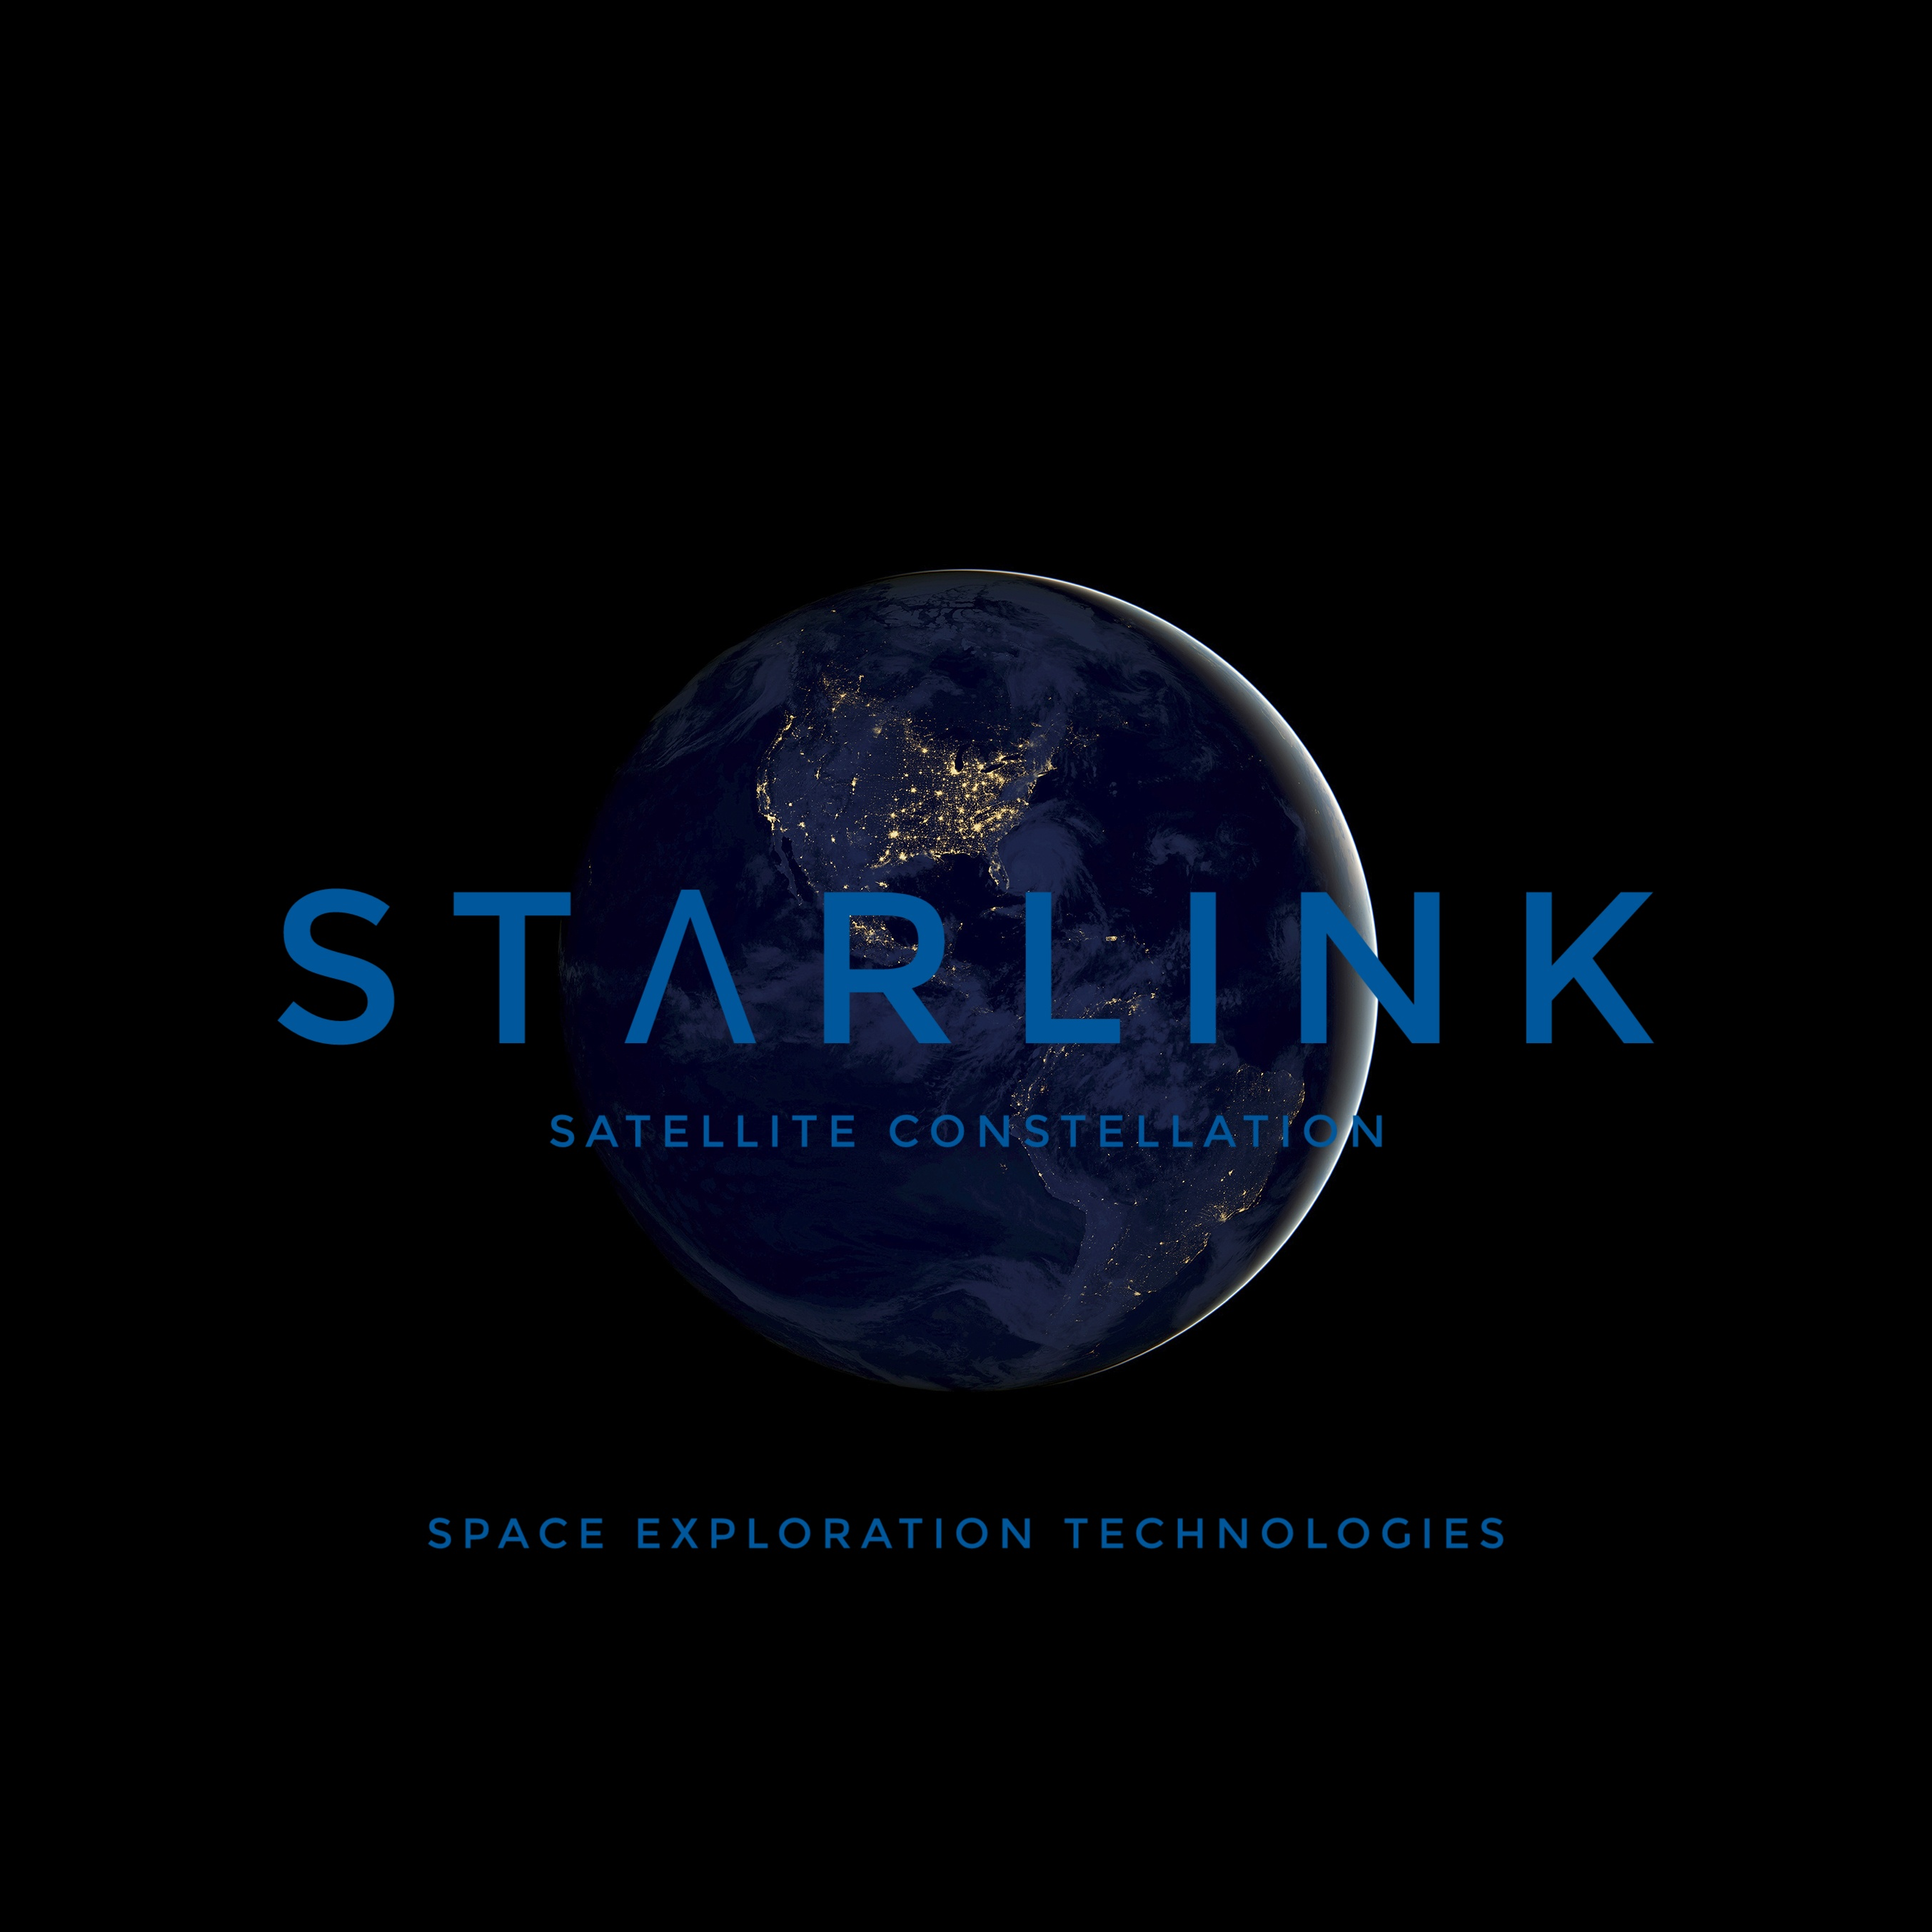 Made an Unofficial logo for the Starlink Constellation.